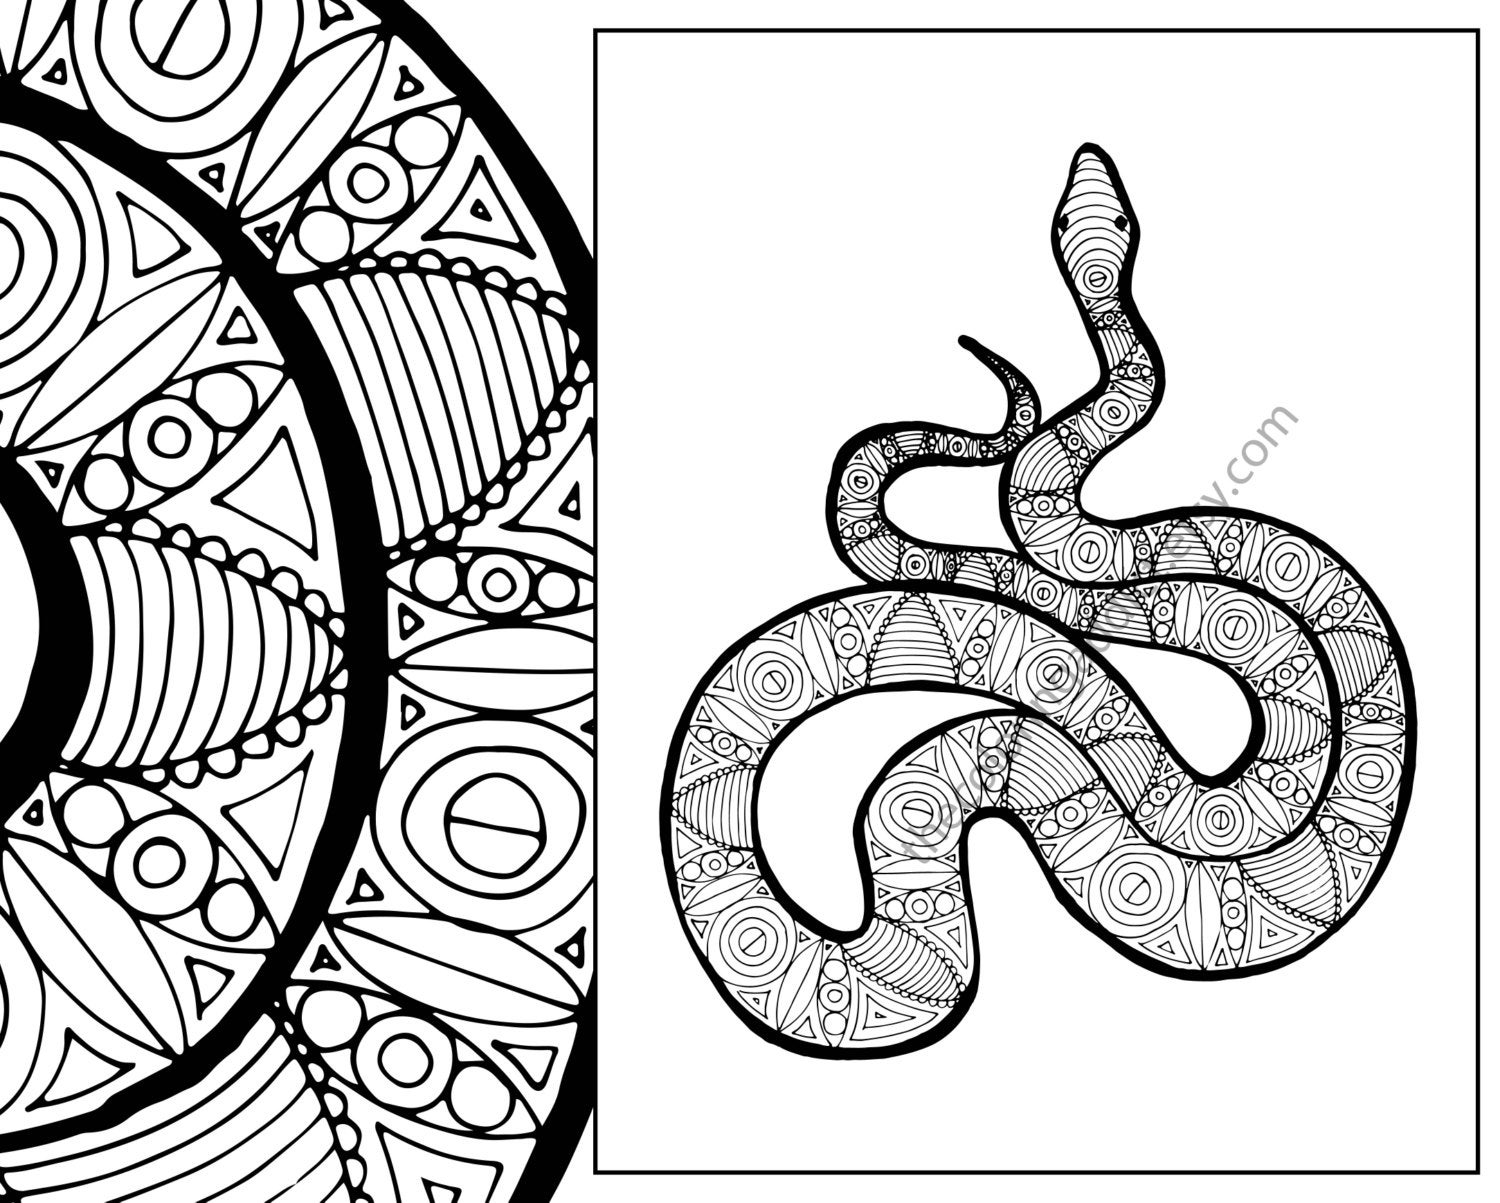 snake to colour in free printable snake coloring pages for kids snake to colour in